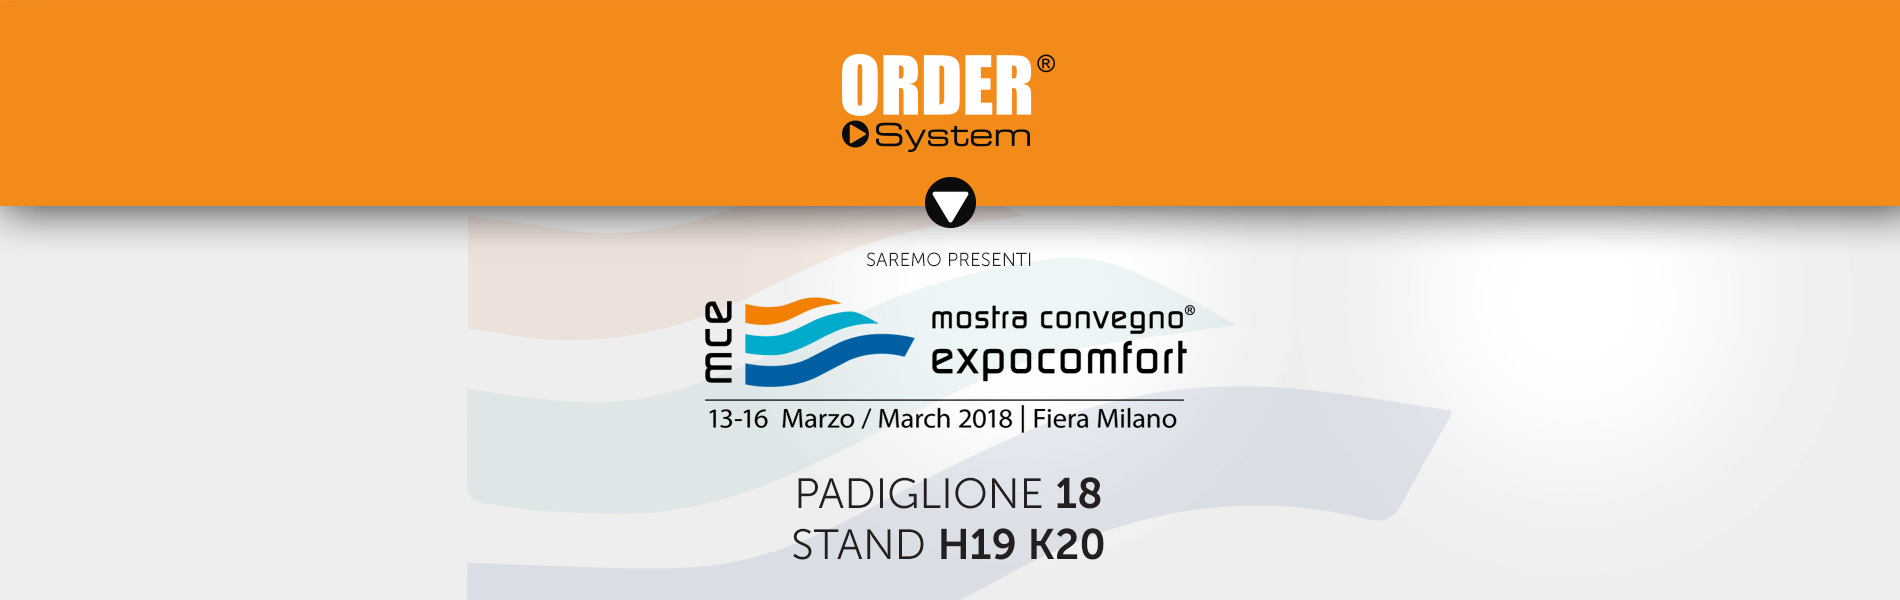 ORDER-news_fiera_mce_2018_01